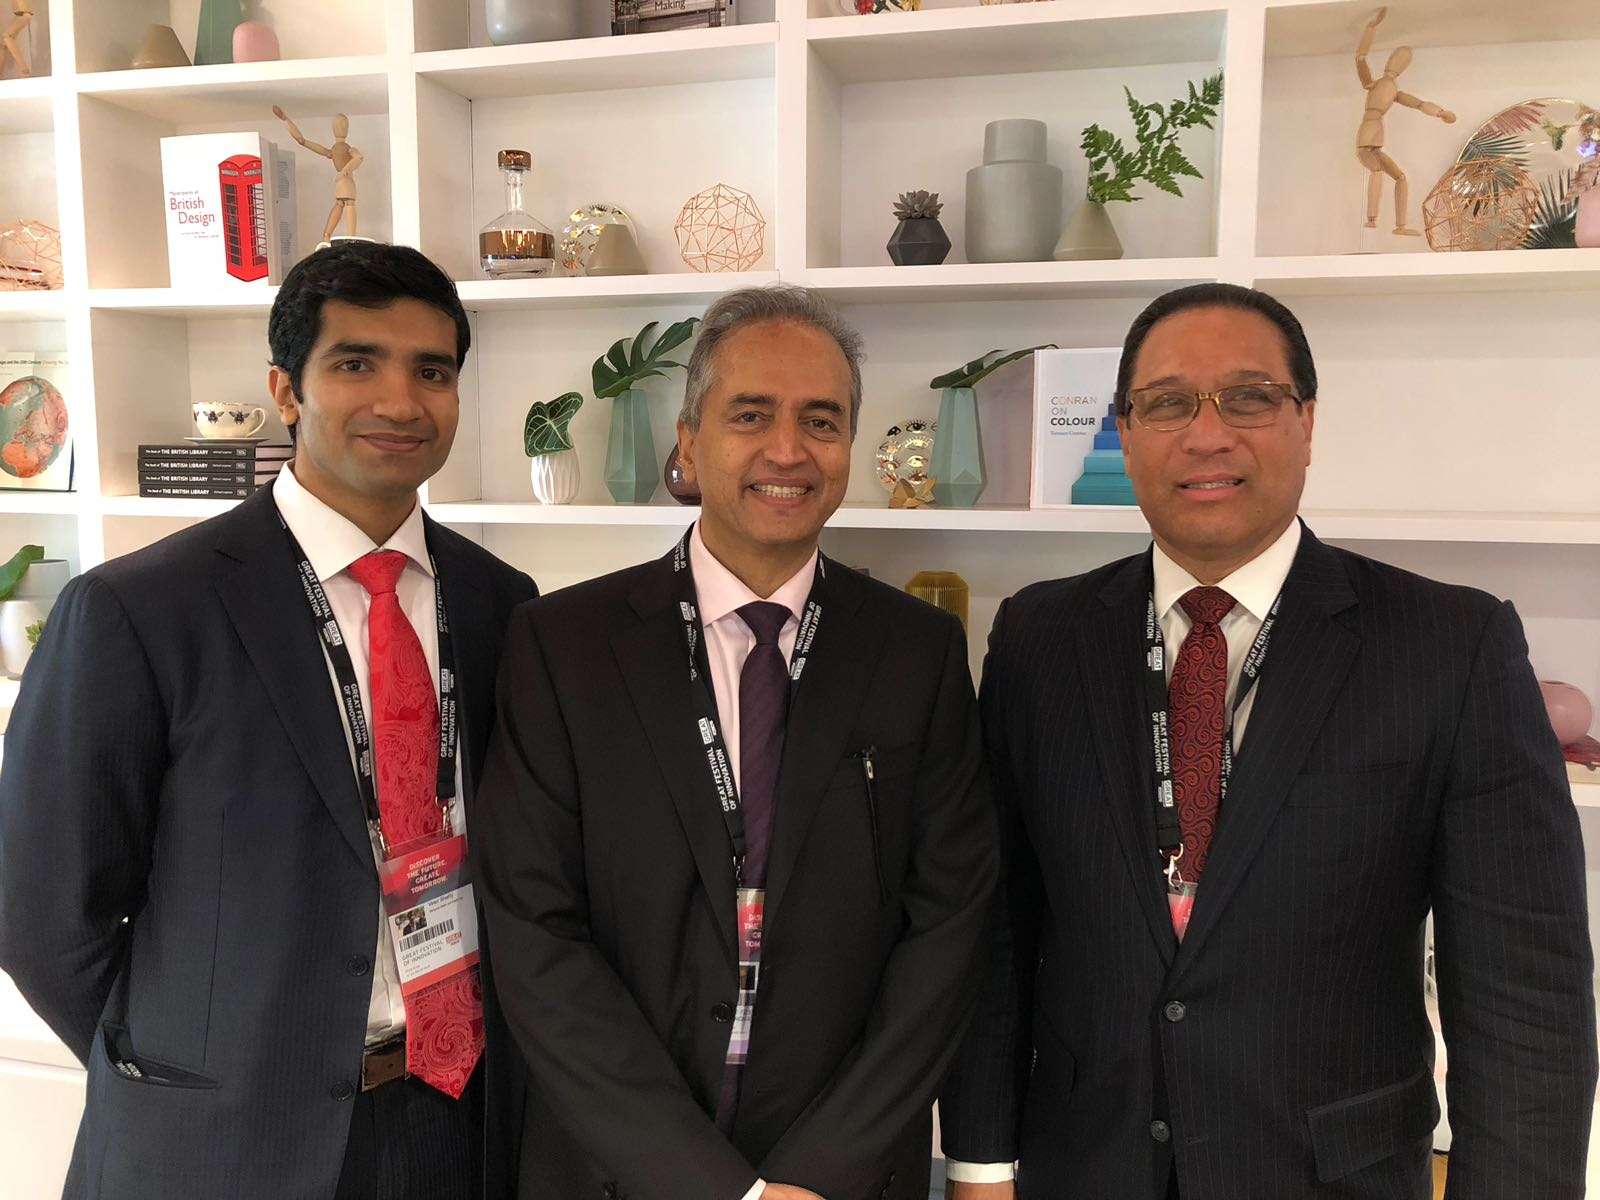 Dr. Devi Shetty is flanked by his son Viren Shetty and Cayman Islands Premier Hon. Alden McLaughlin